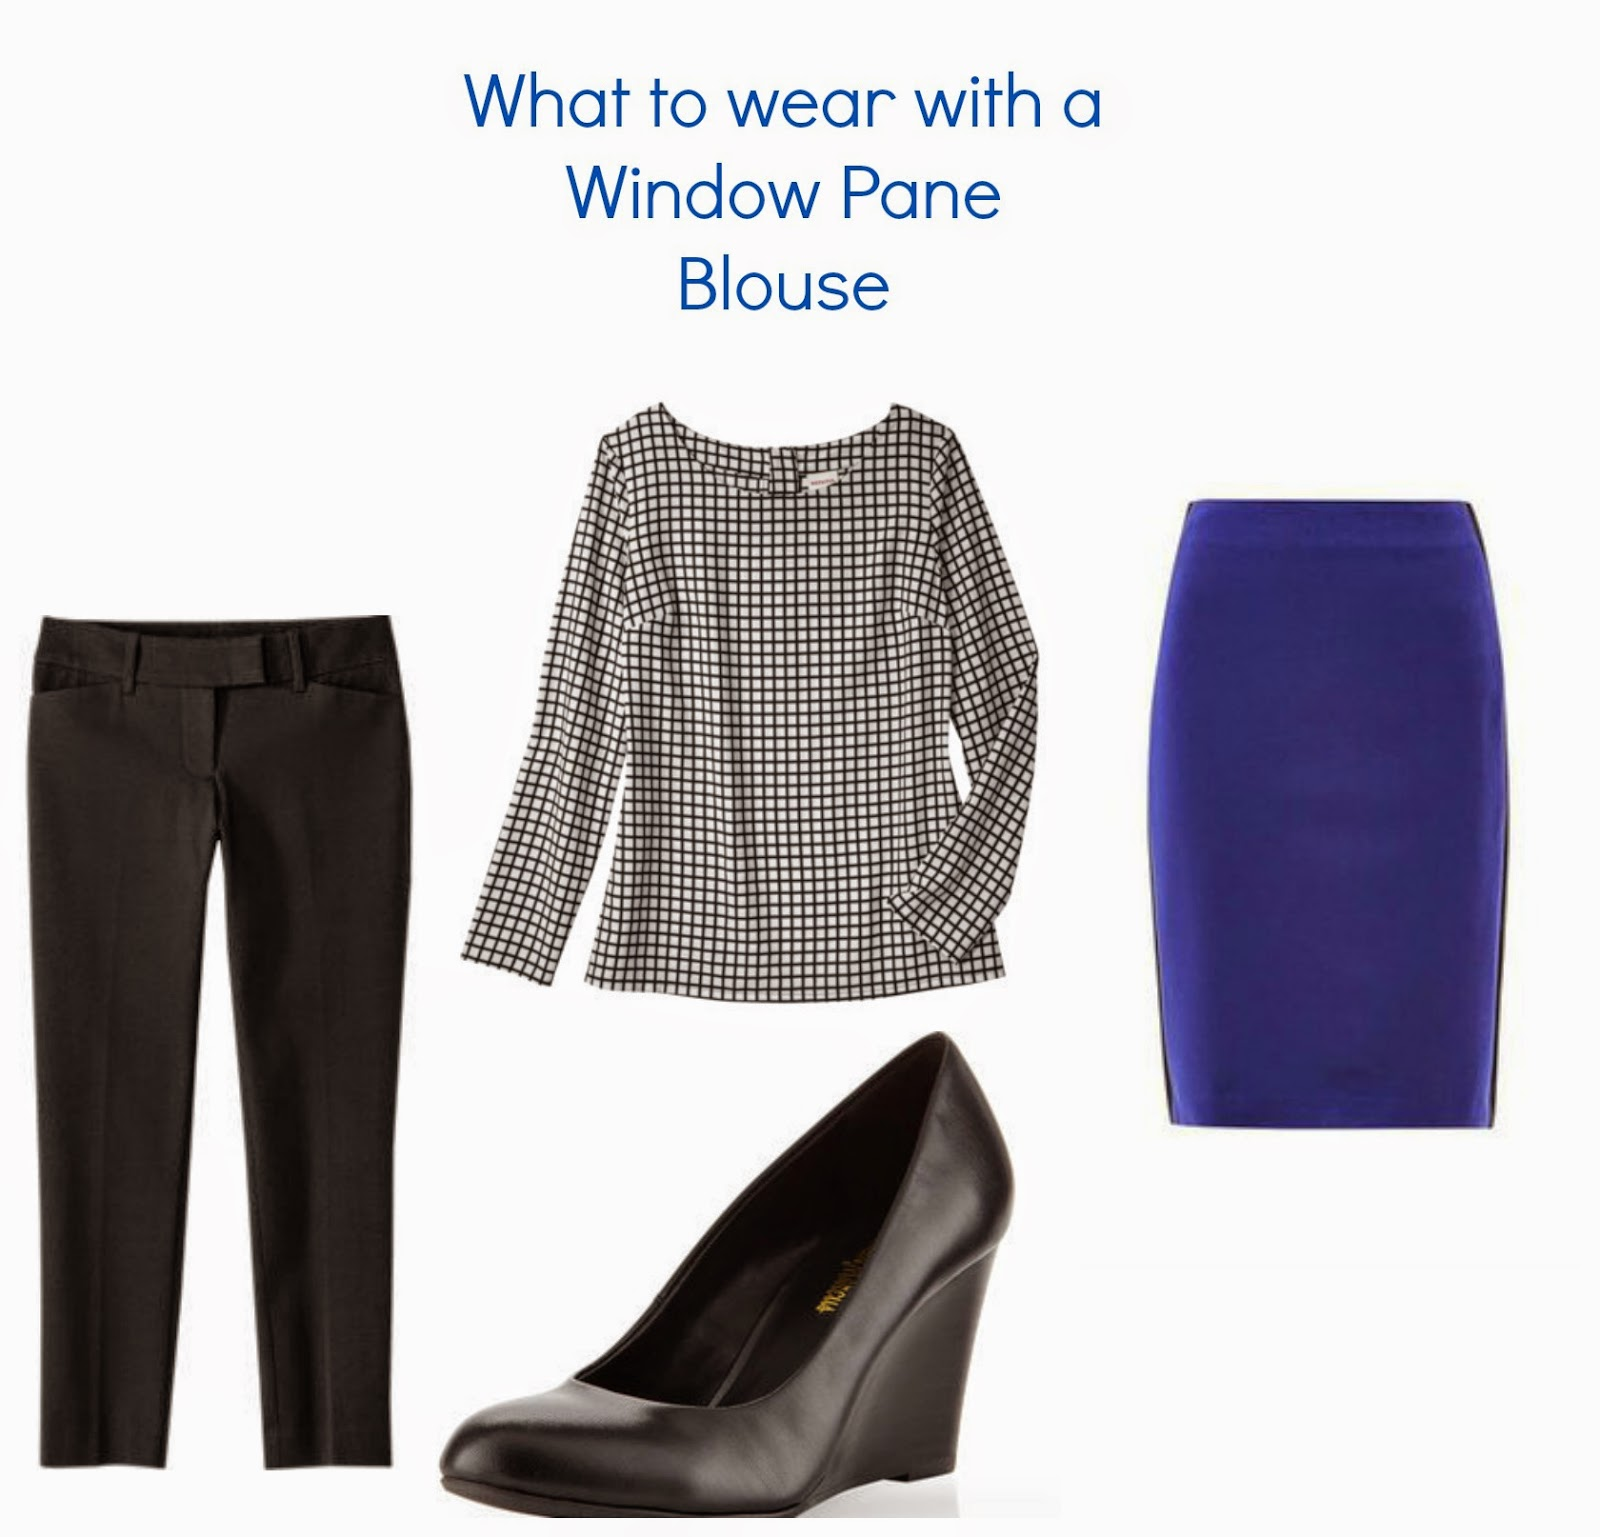 Window pane blouse, Cobalt skirt, black wedge pumps, Target ankle pants